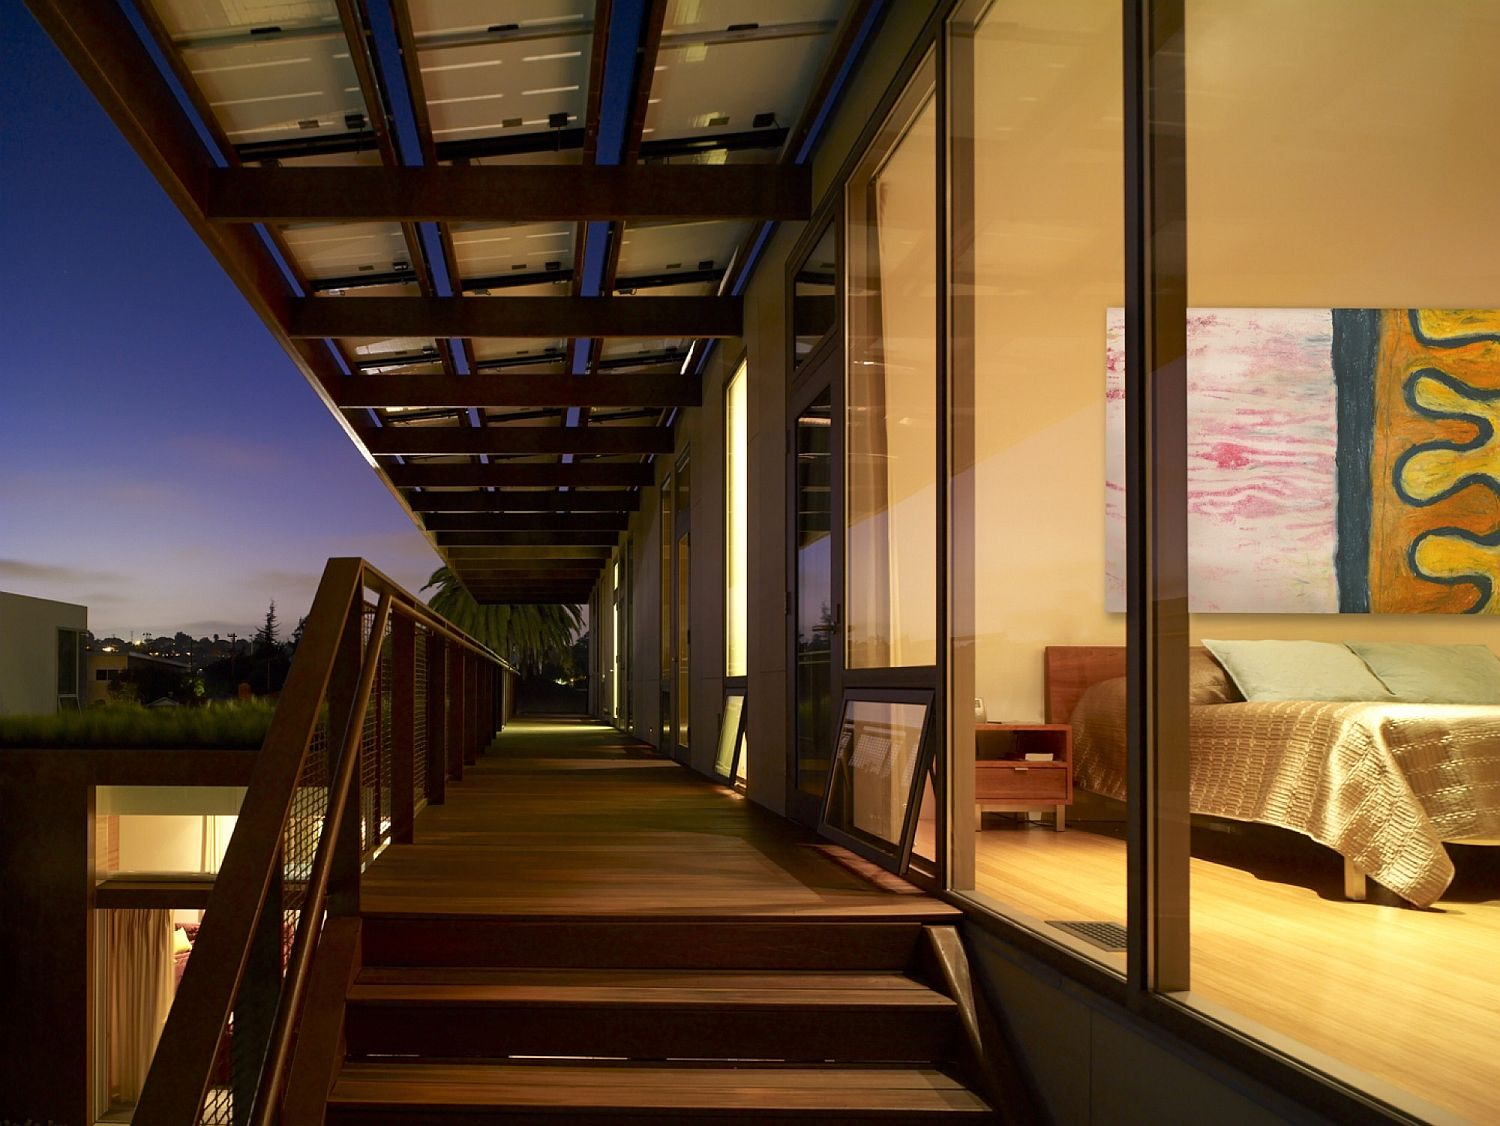 Covered-walkway-of-the-top-level-connects-the-various-bedrooms